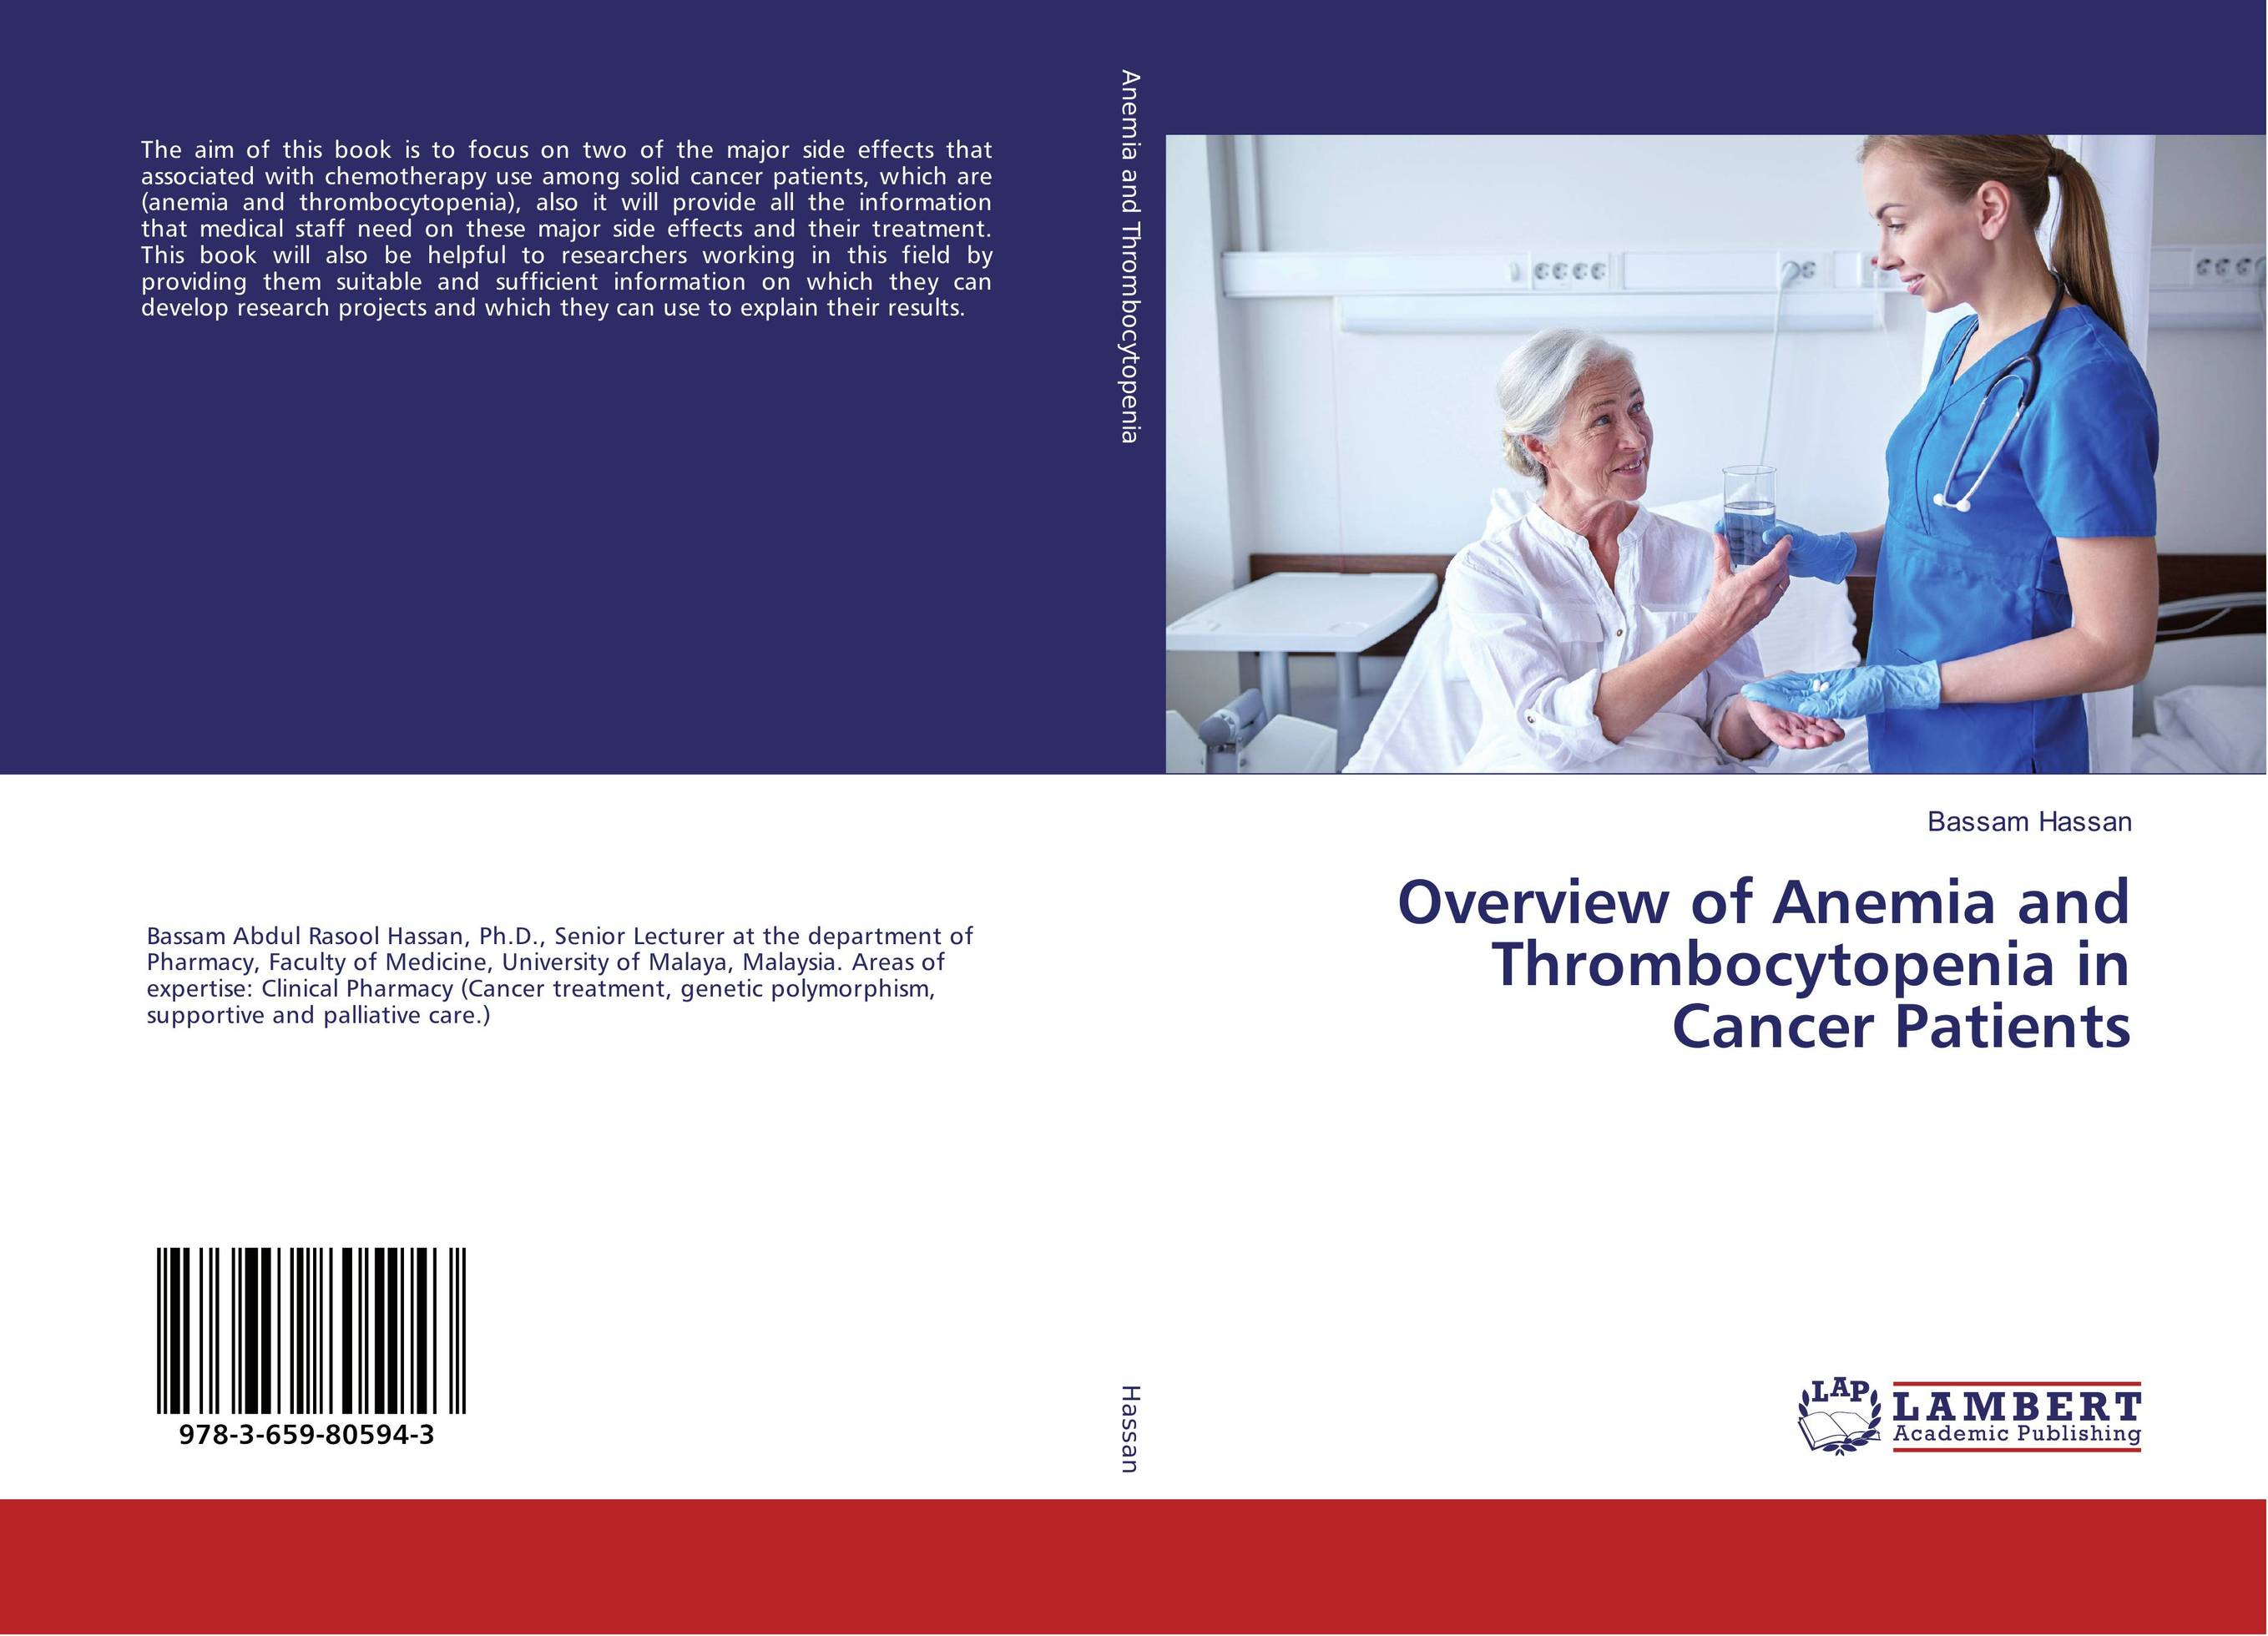 Overview of Anemia and Thrombocytopenia in Cancer Patients choices in breast cancer treatment – medical specialists and cancer survivors tell you what you need to know